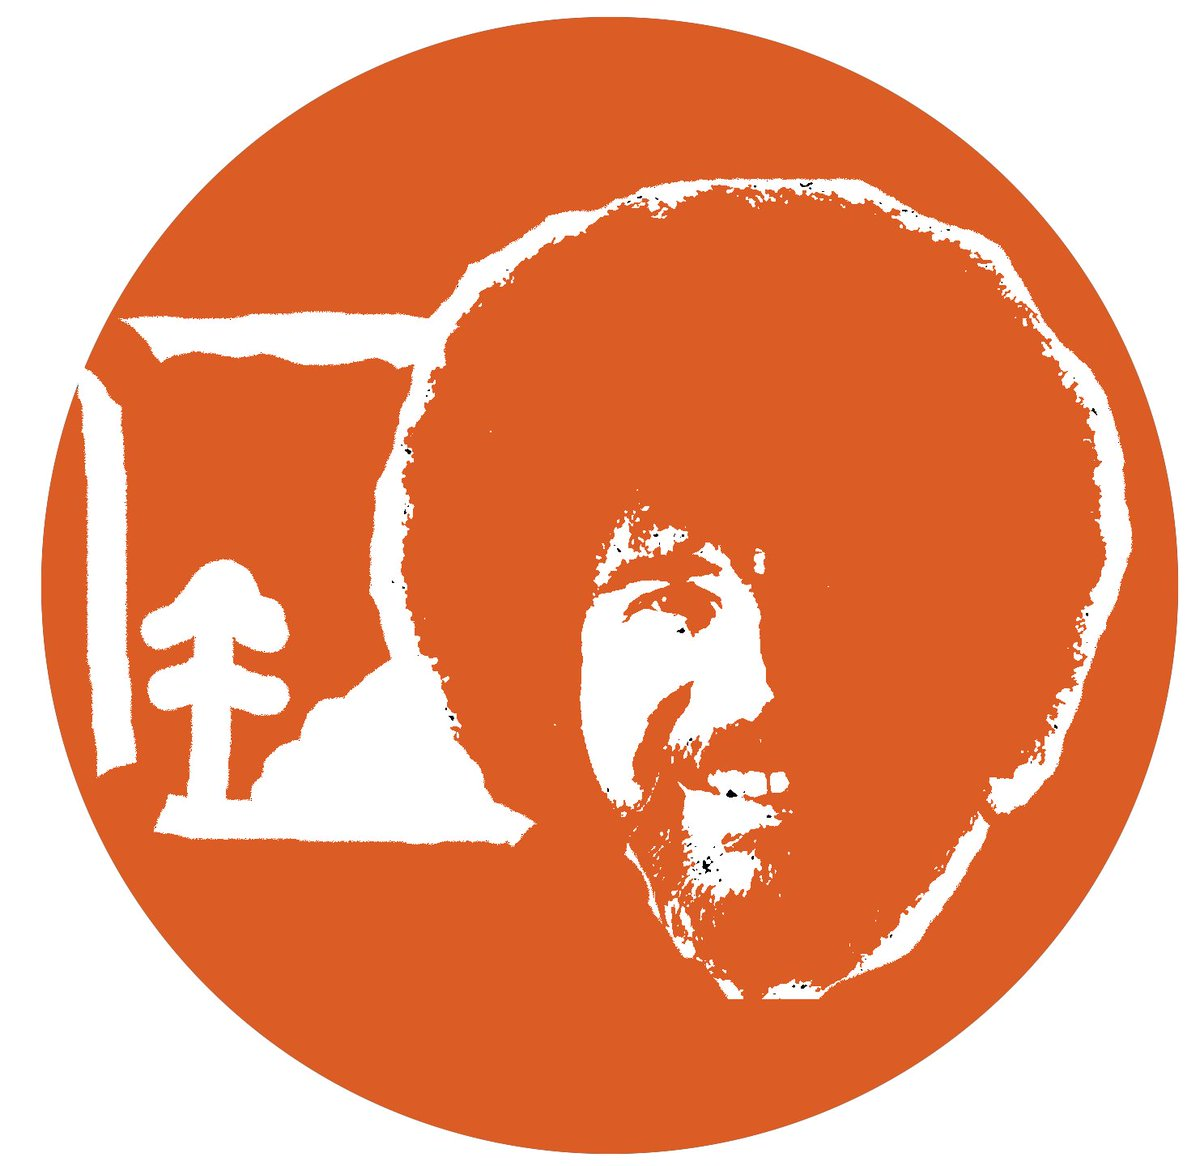 bob ross pumpkin template  Bob Ross Dowager Countess Mr Rogers : PUMPKIN STENCILS Bob ...